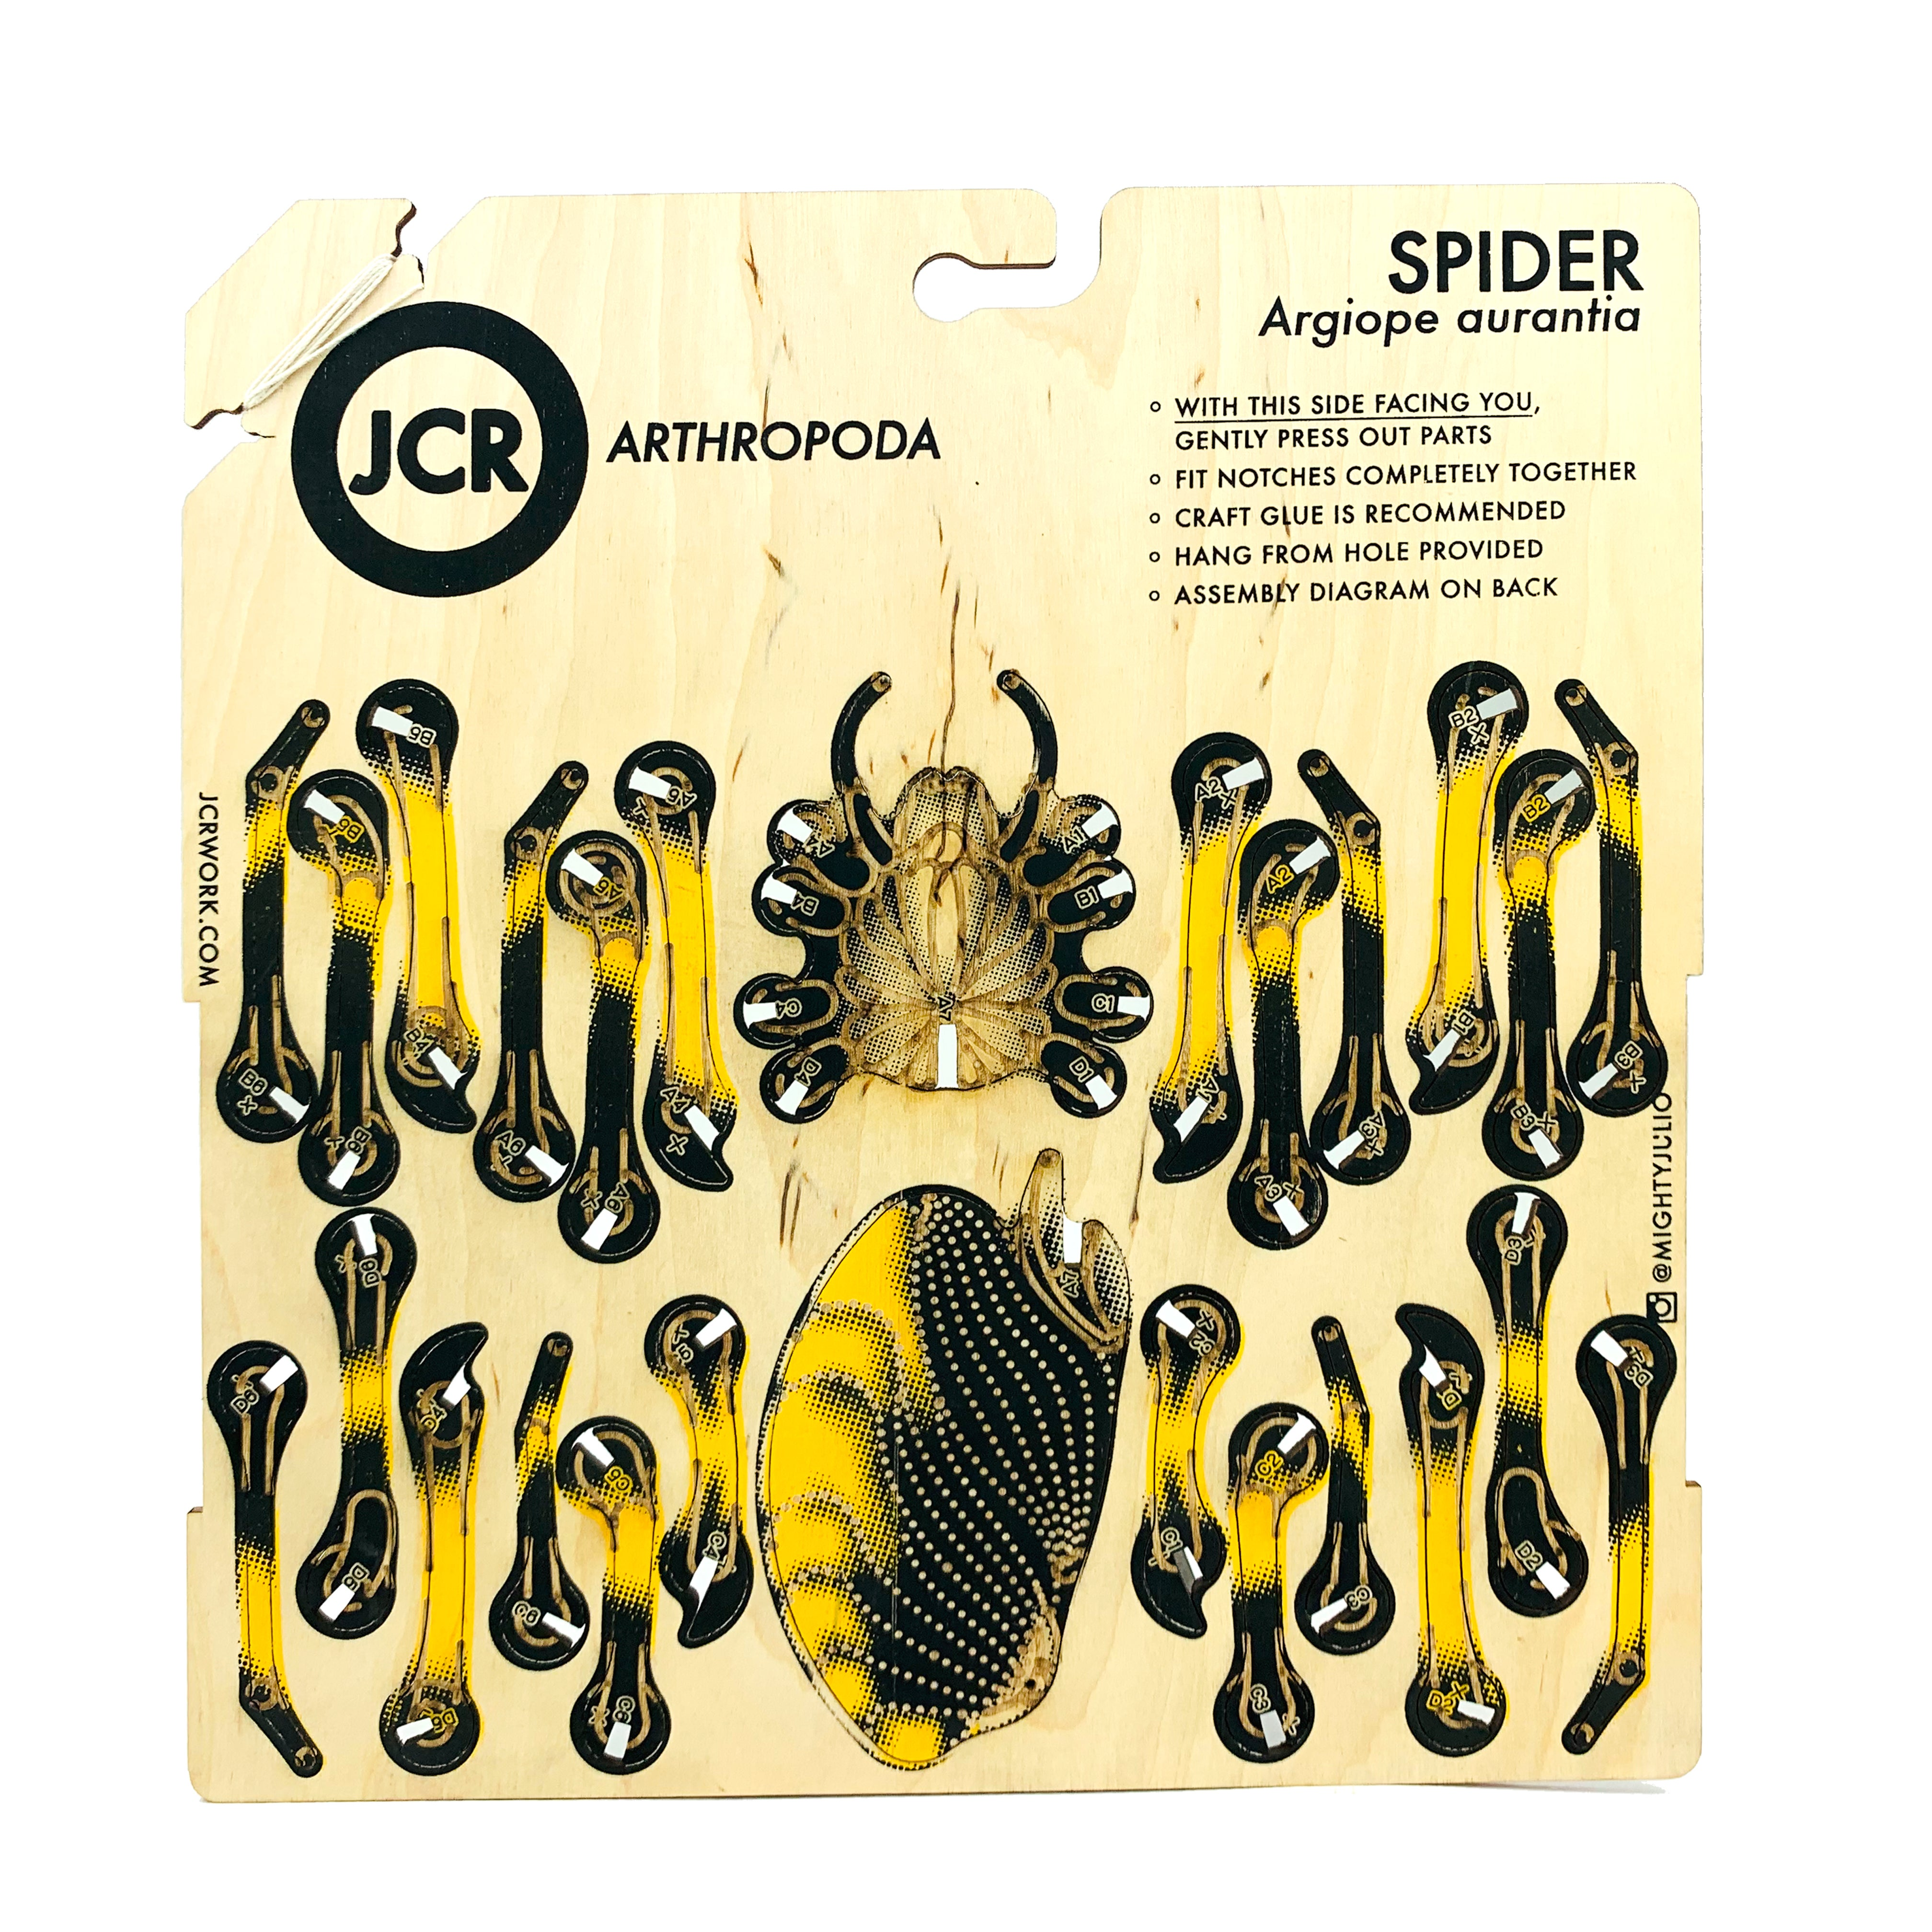 jcr arthropoda spider jcr workshop Arthropoda Grasshopper image of jcr arthropoda spider